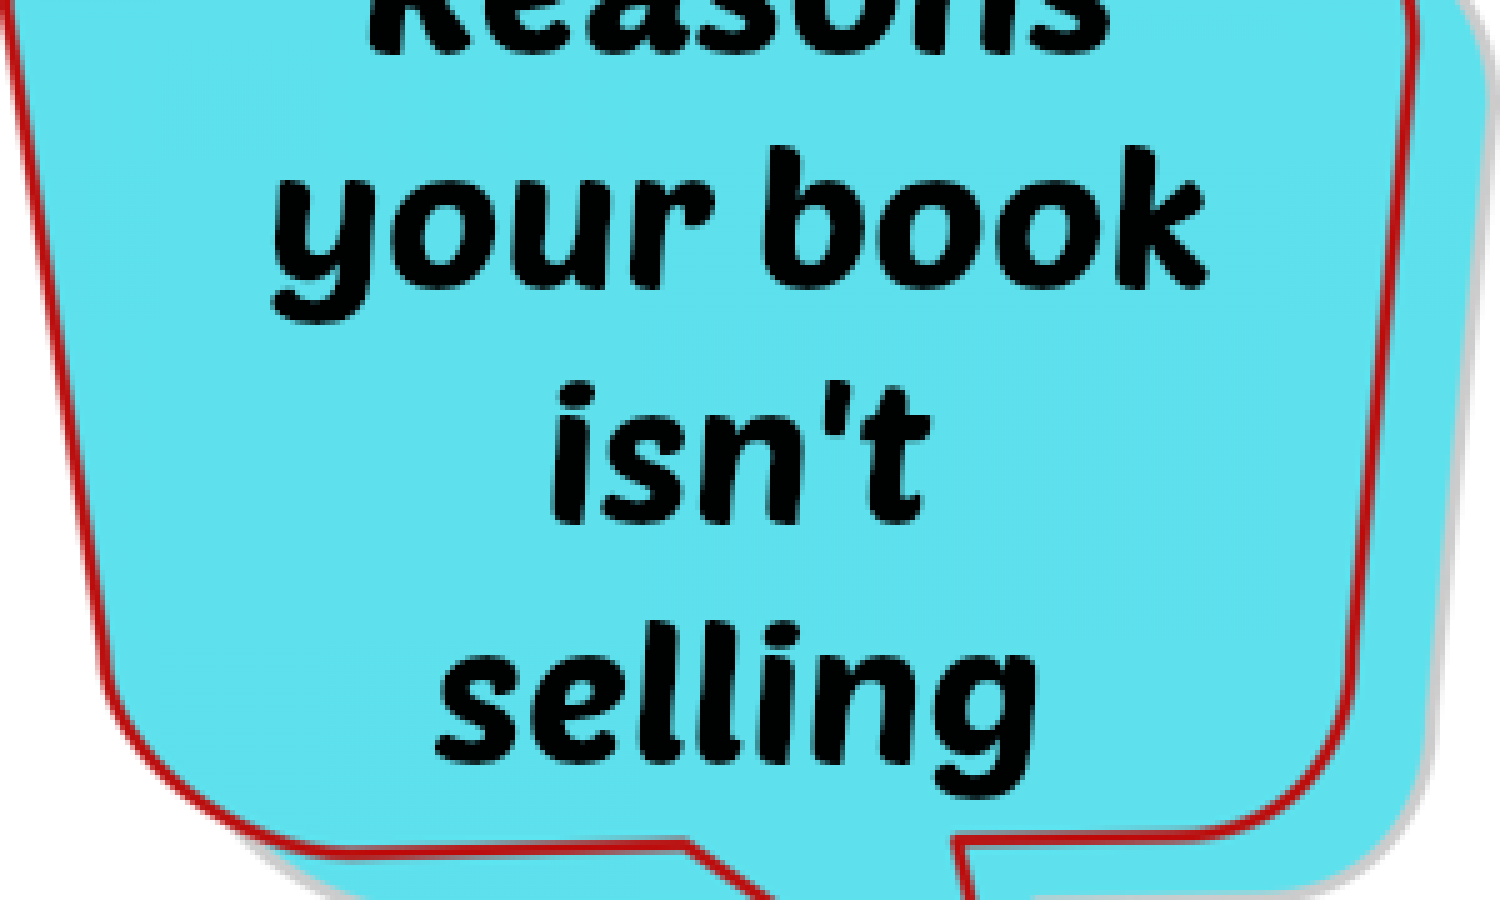 reasons your book isnt selling